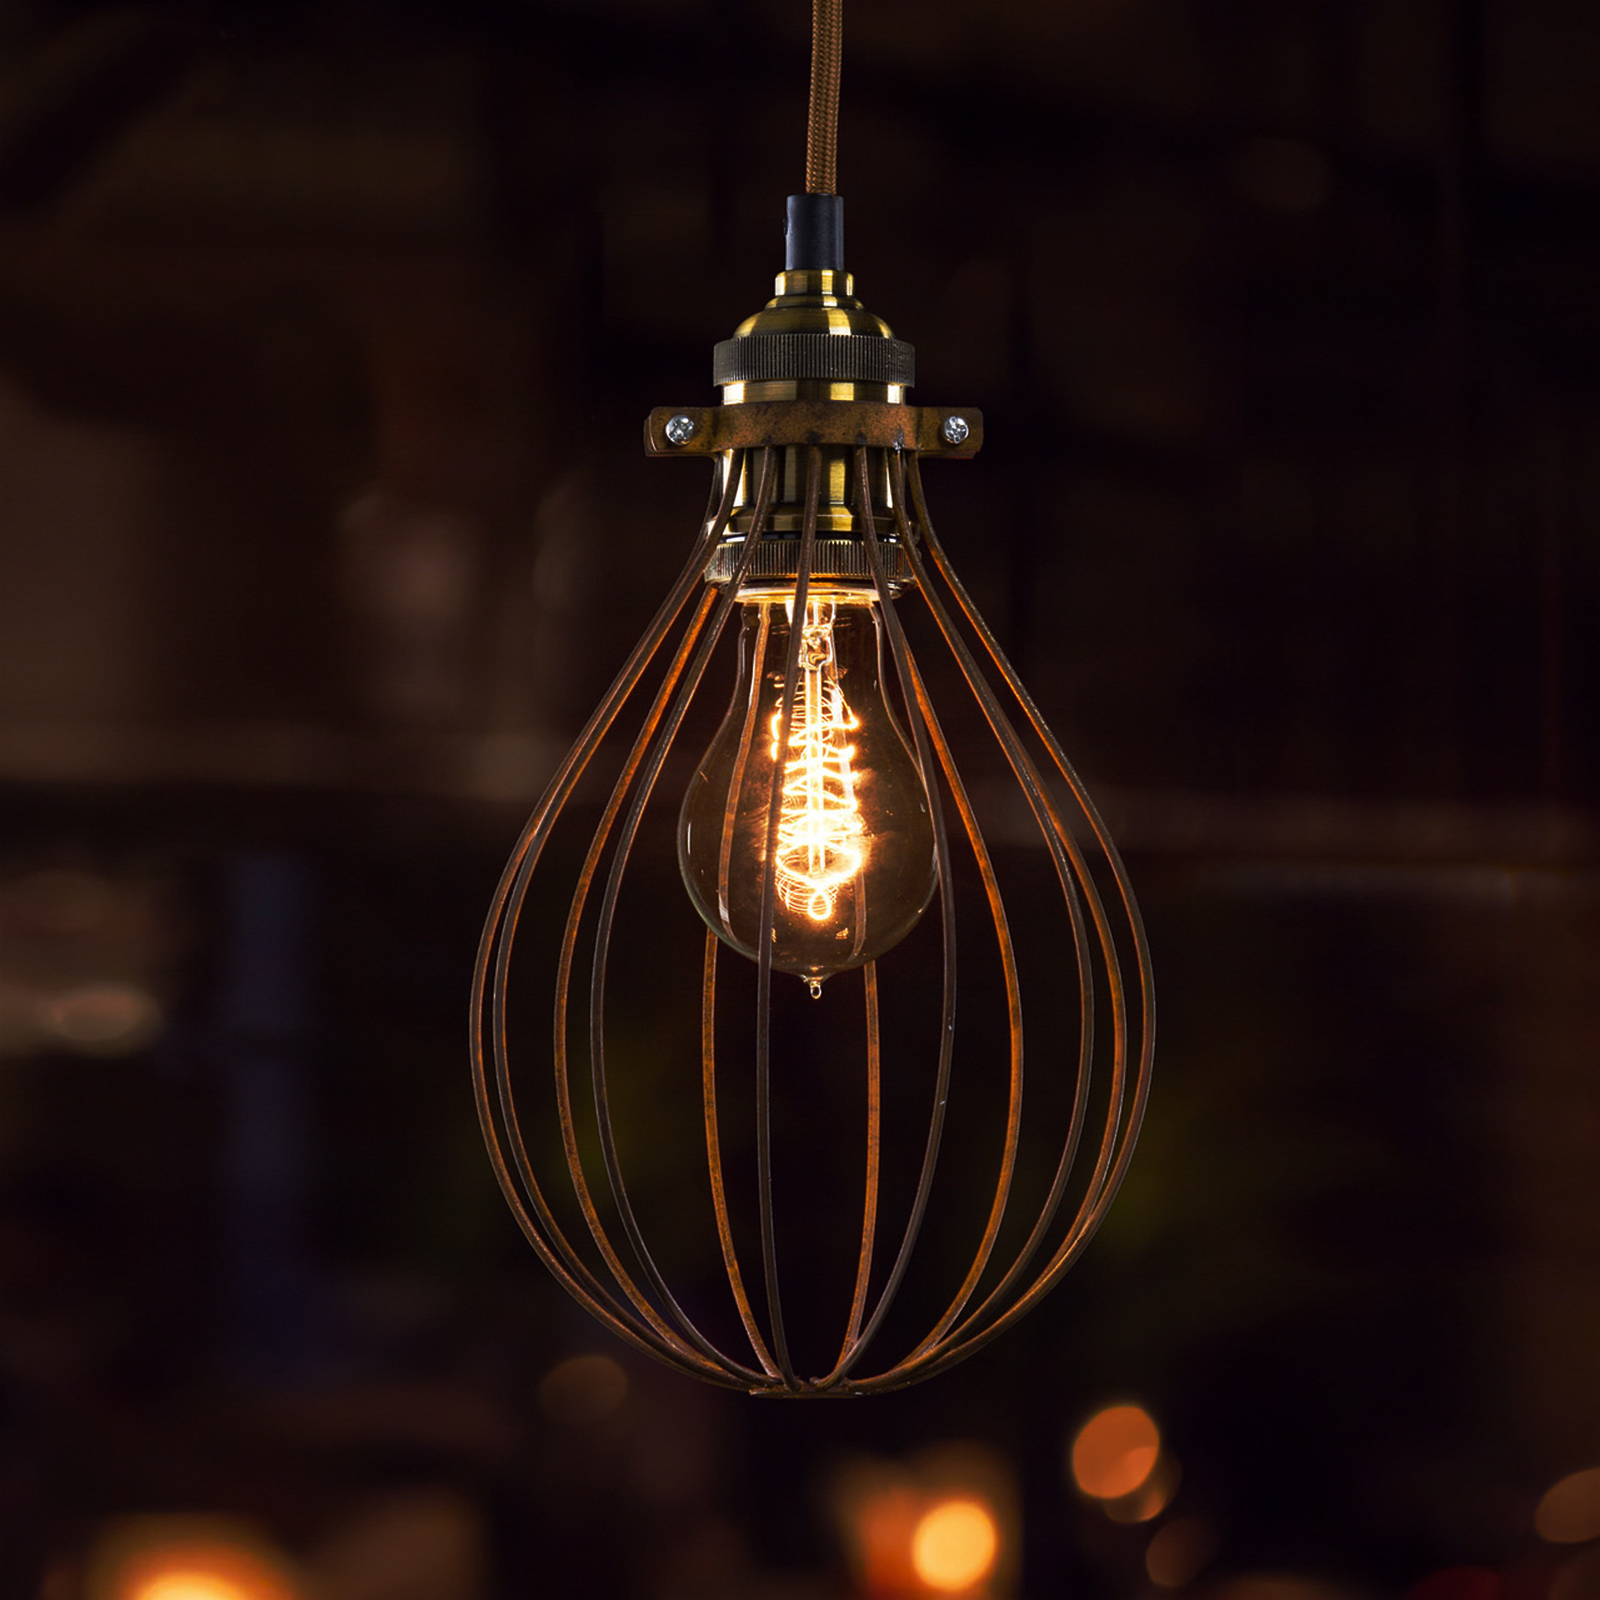 Bulb Cage Light Fittings Bulb Cage Industrial Vintage Lighting Balloon Cy Ebay